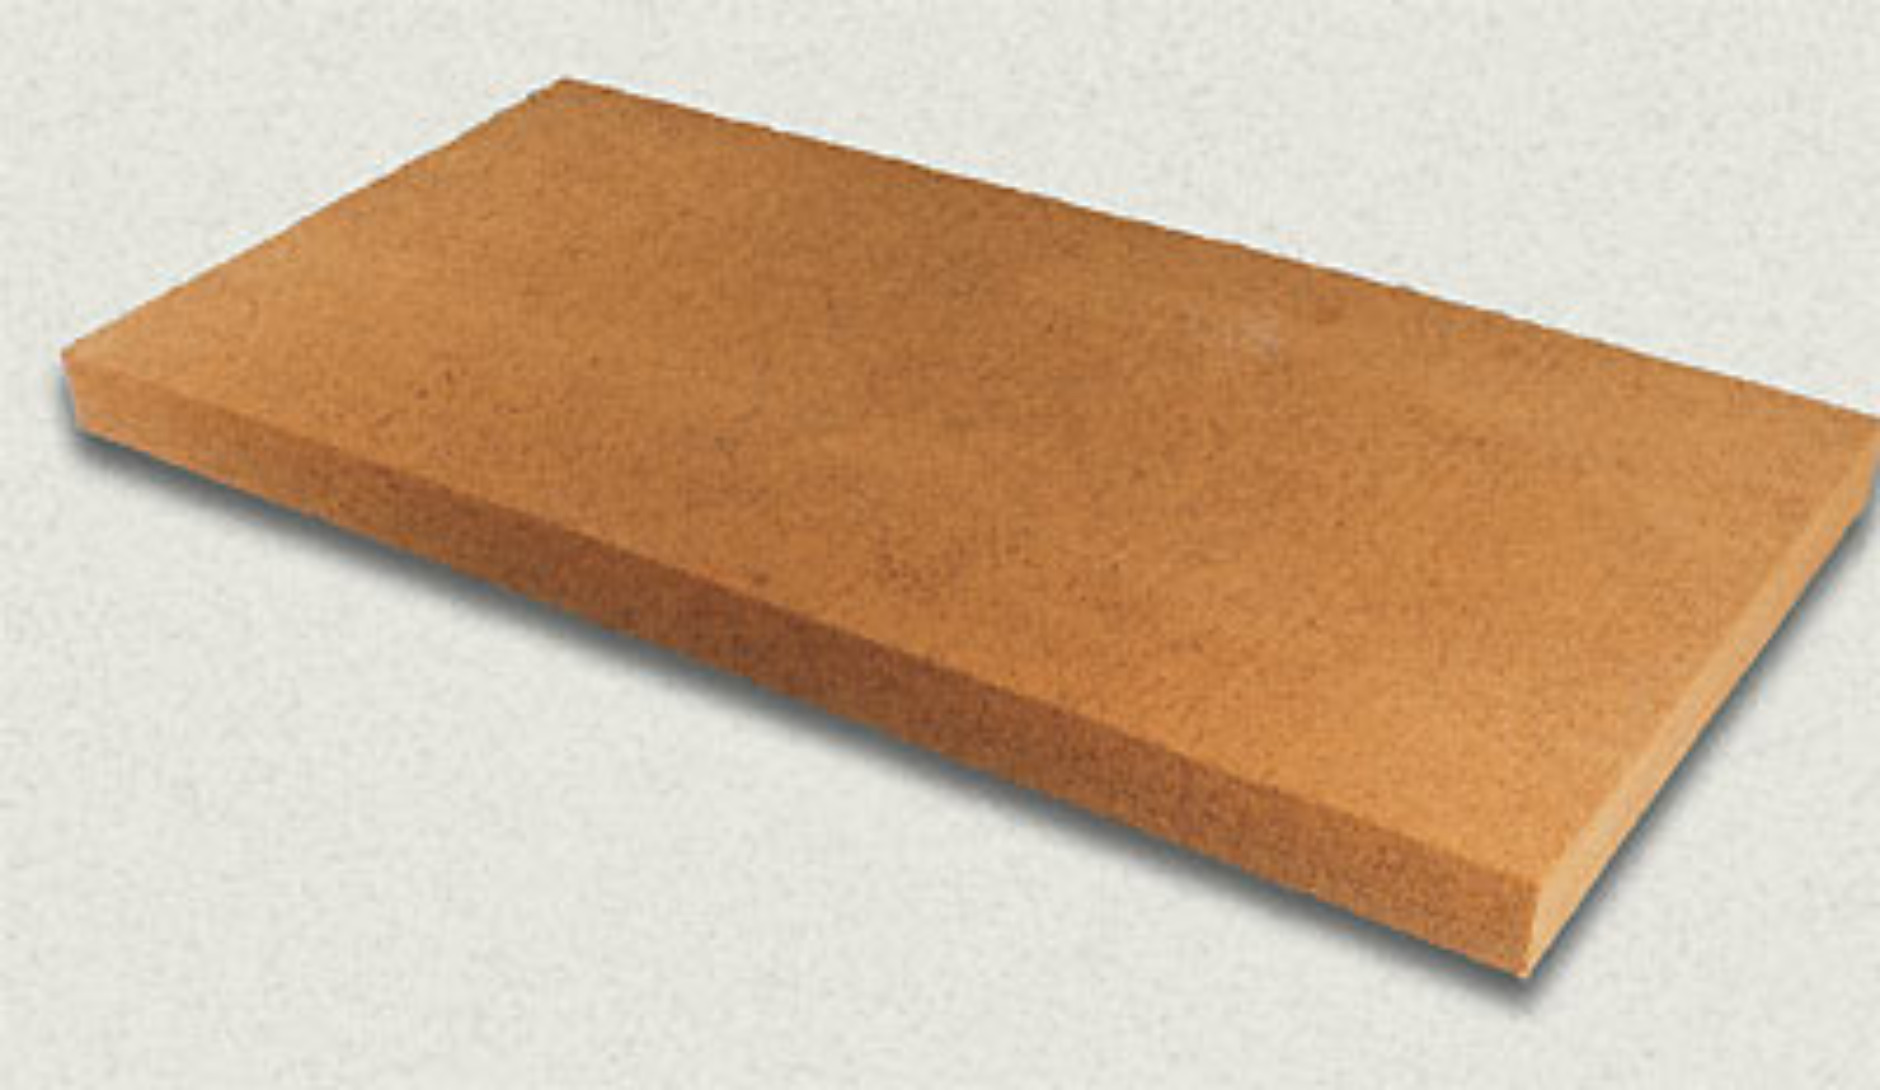 Any Size Coir Amp Pure Wool Mattress For Cot Beds Made